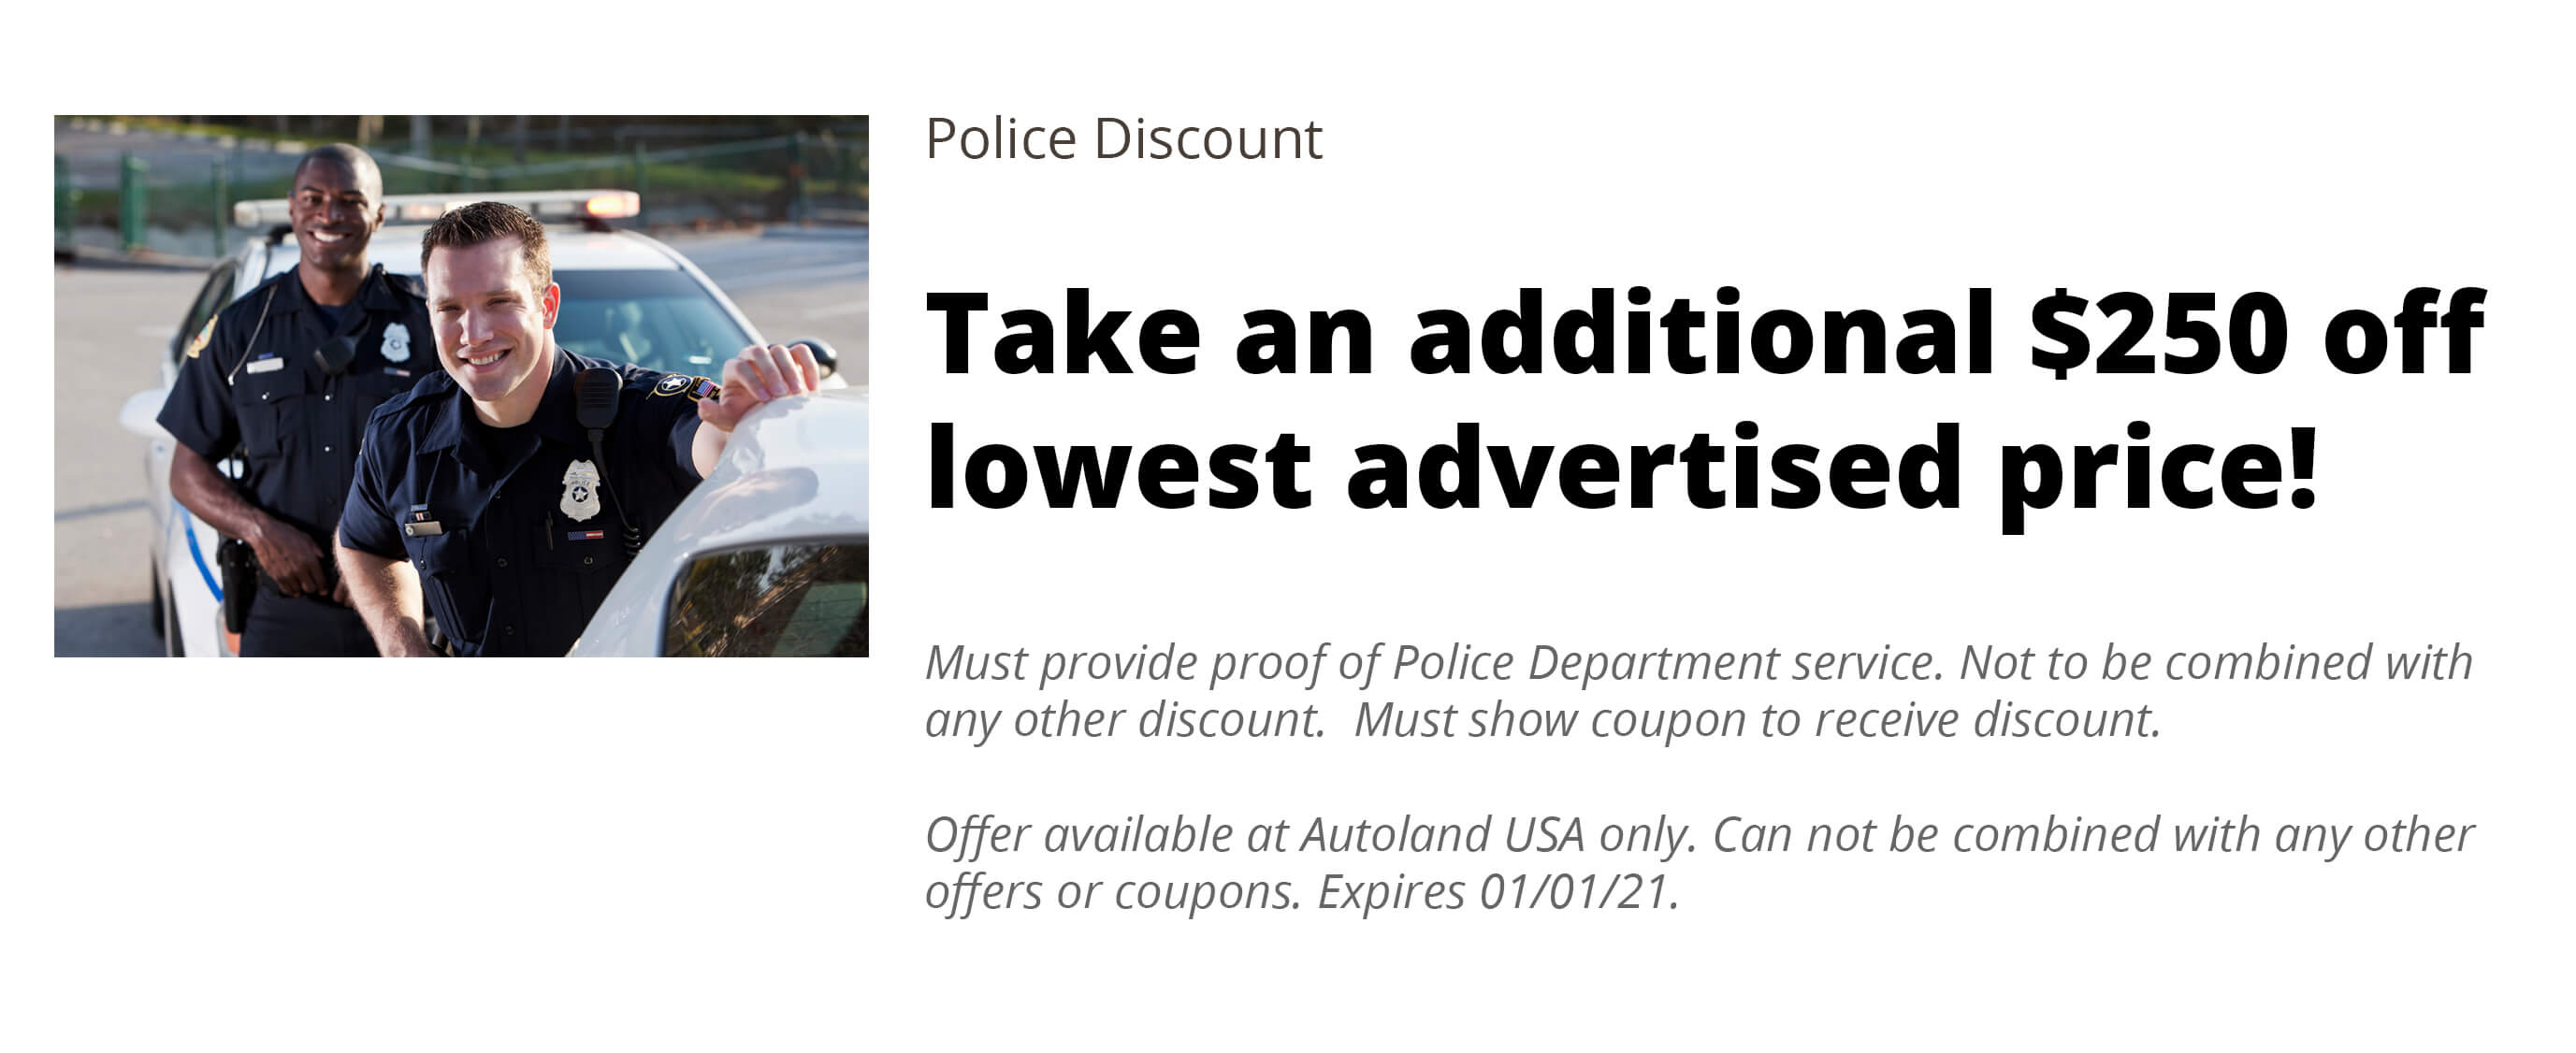 Police Discount